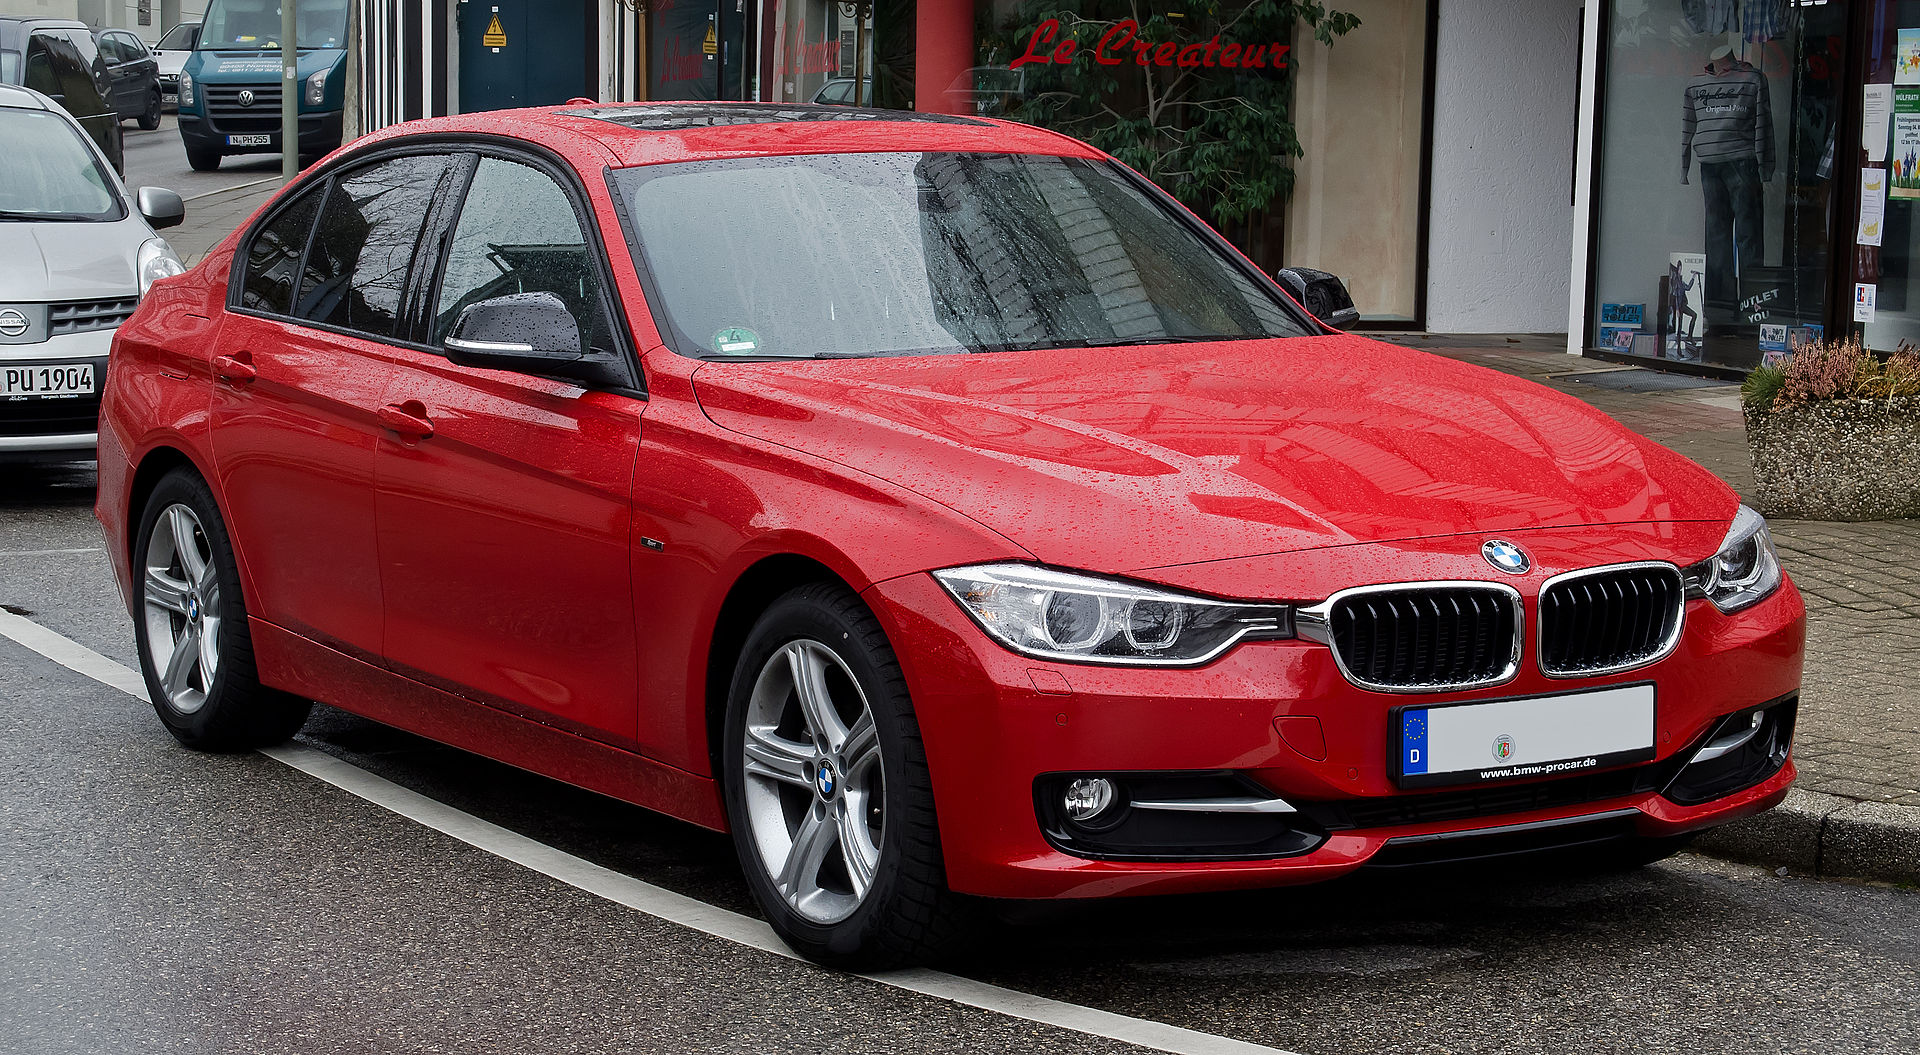 4wheelsuk A Blog About Cars Car Of The Day Bmw 3 Series